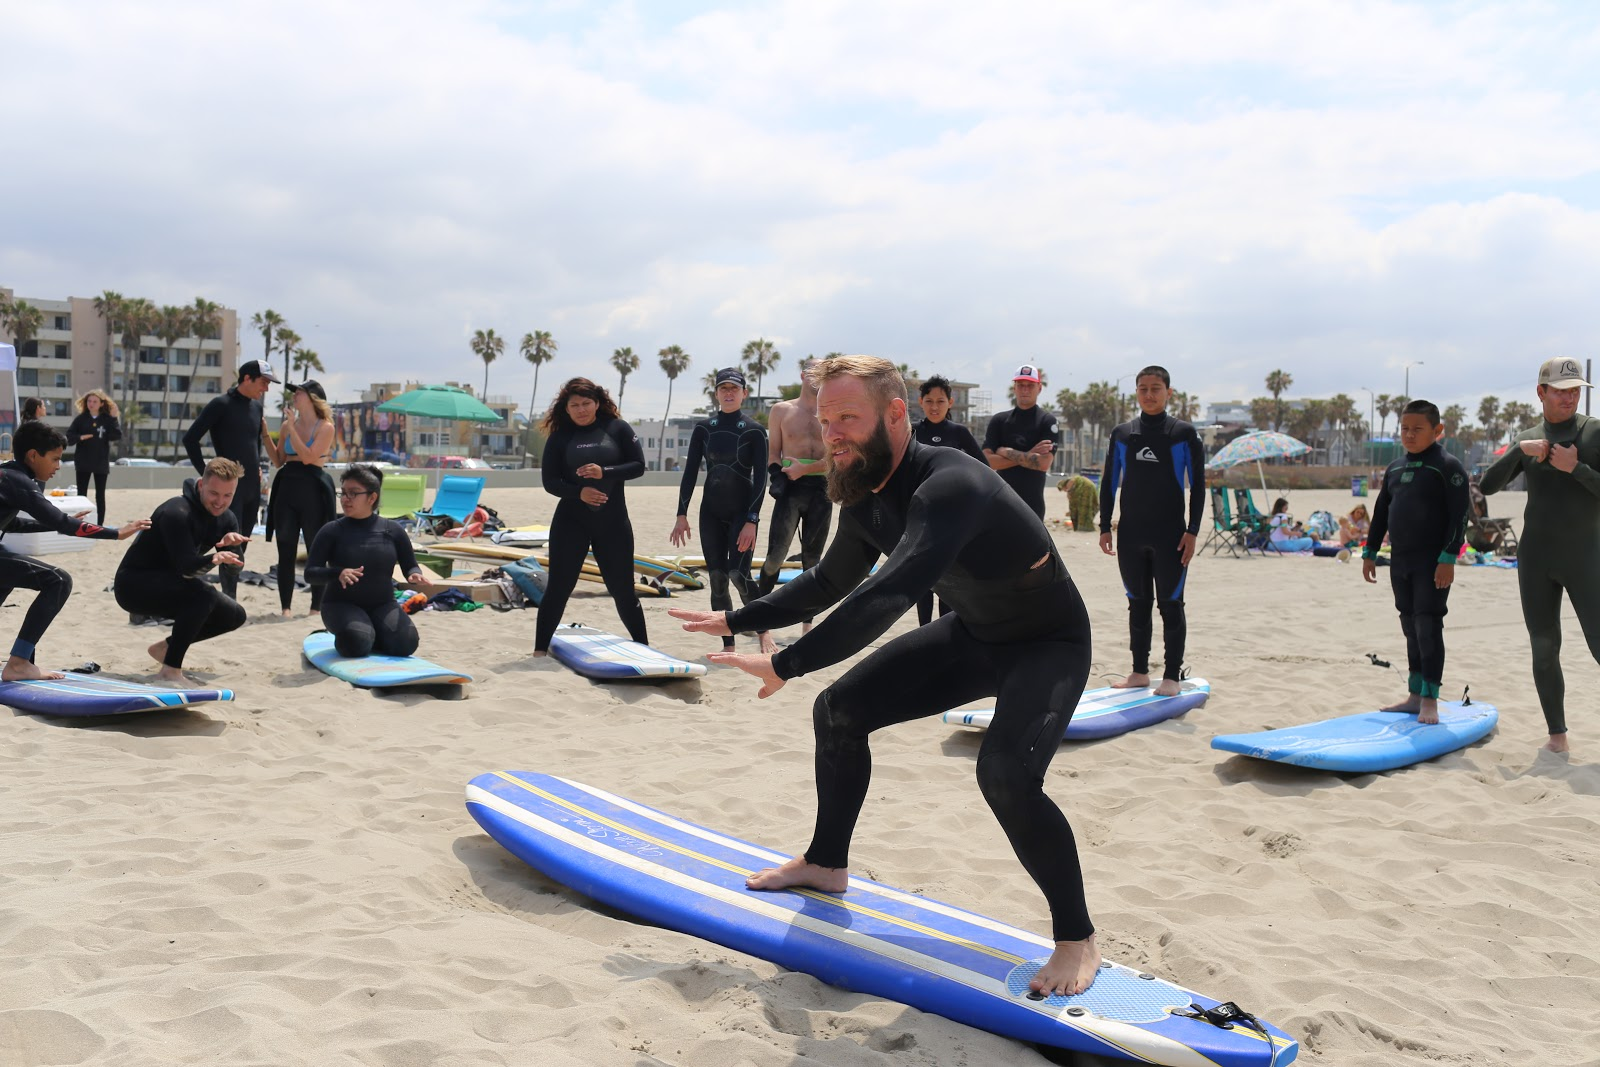 stokeshare-ambassador-jared-yore-teaching-LAPD-cadets-surfing